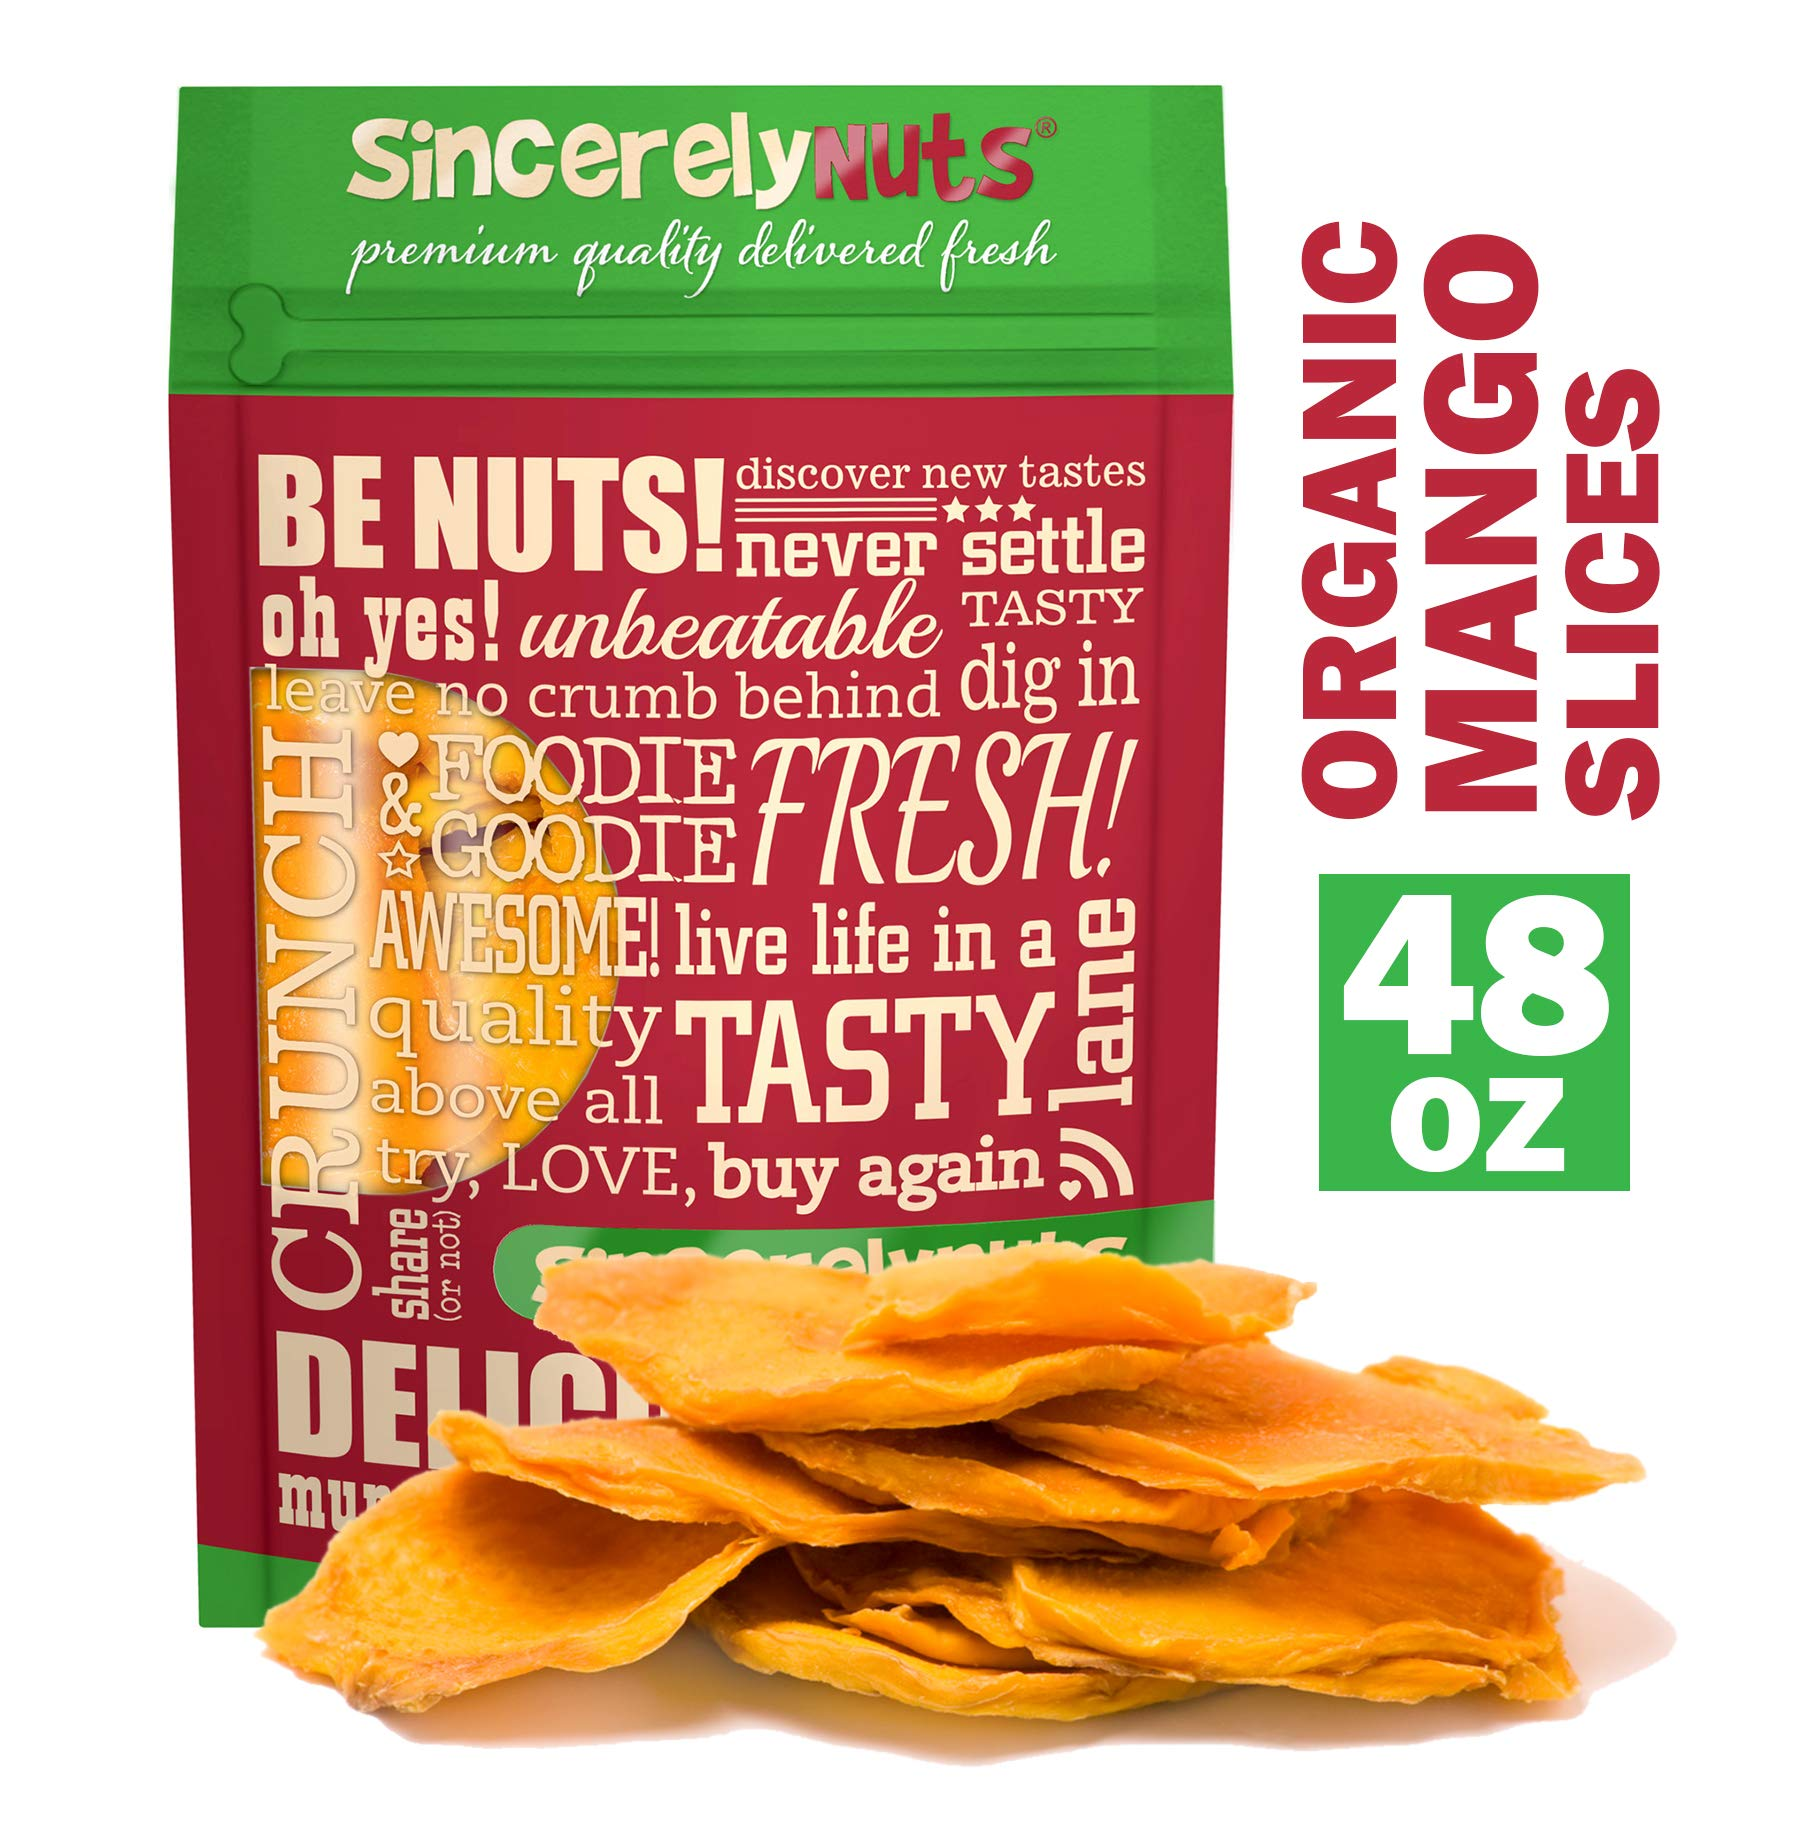 Sincerely Nuts Dried Organic Mango Slices (3 LB)- Gluten-Free Food, Vegan, and Kosher Snack-Nutritious and Satisfying Tropical Fruit-High in Vital Nutrients-Healthy Alternative for Sweet Tooth by Sincerely Nuts